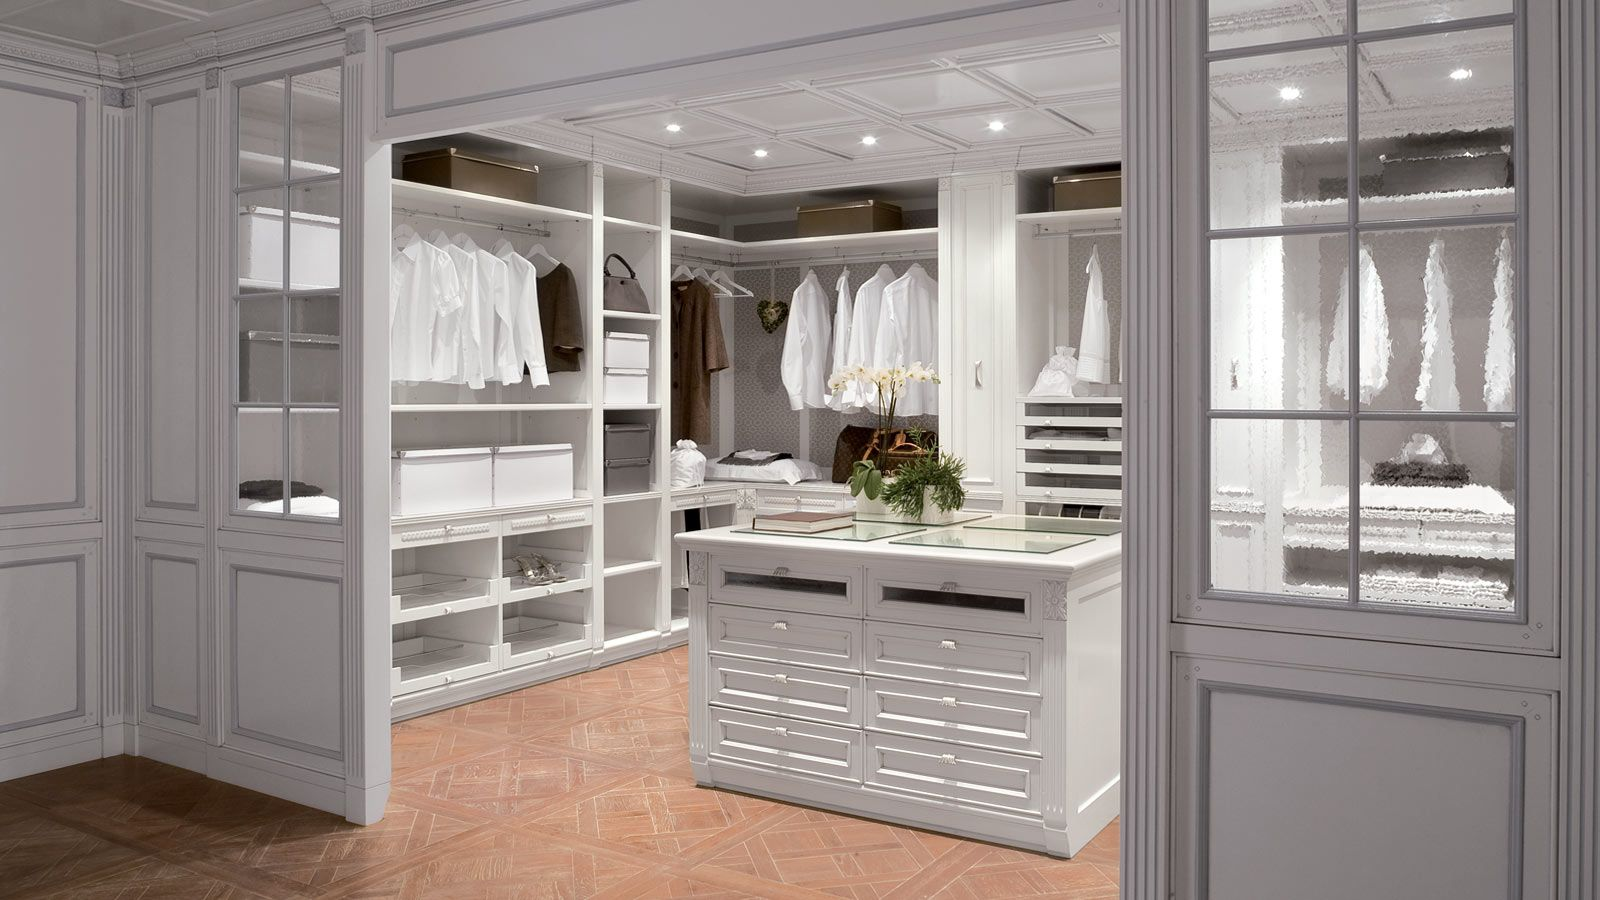 20 Walk in Closet Designs That are Second to None Wardrobe